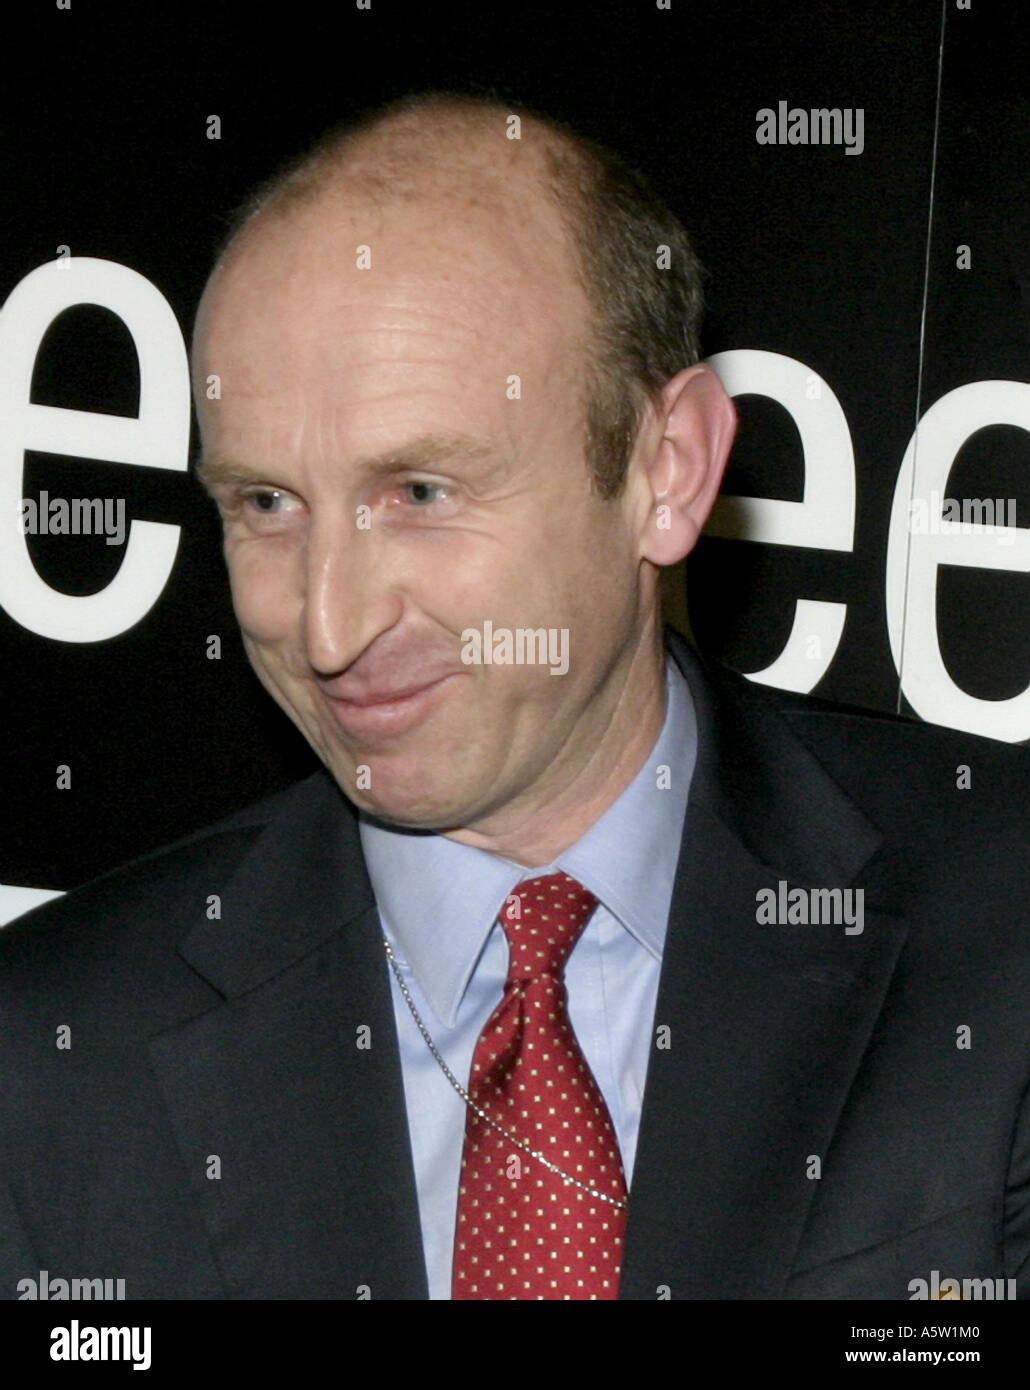 John Healey.Labour MP for Wentworth and Financial Secretary at the Treasury.Portrait.2005 - Stock Image